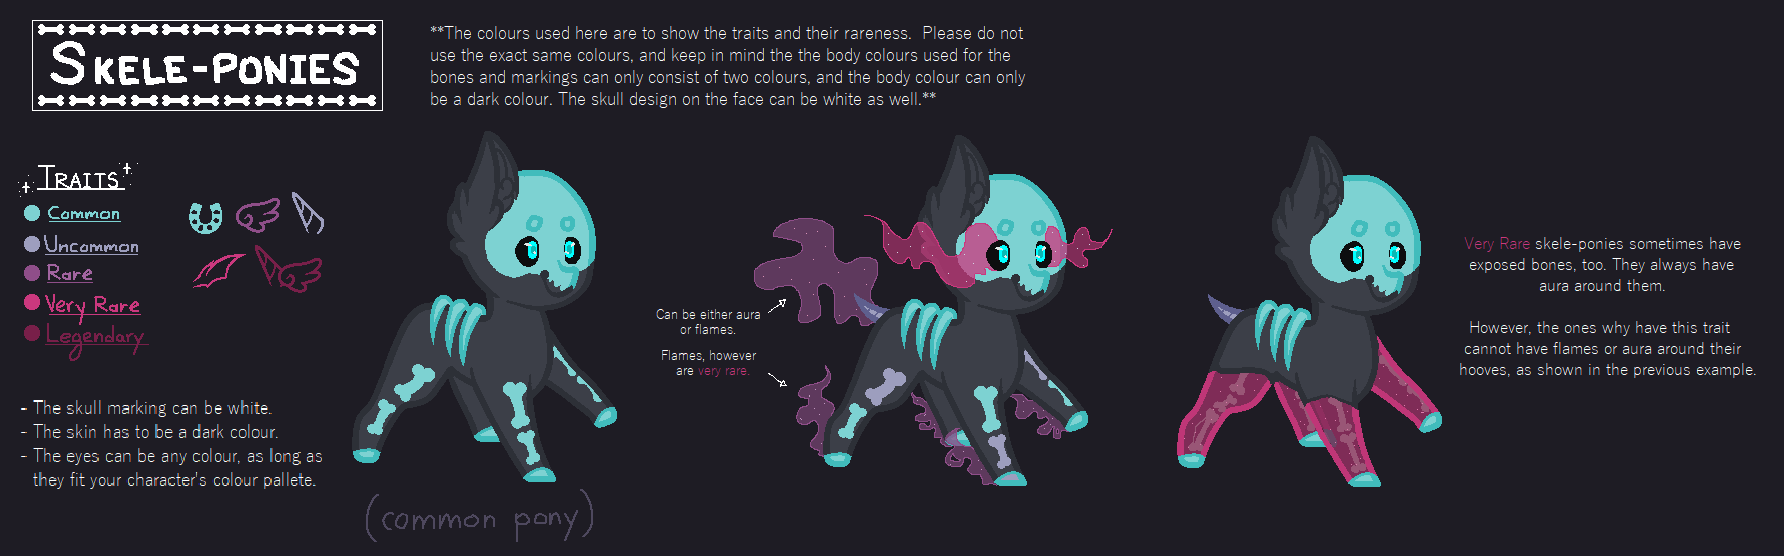 Open Species // Skele-ponies - by ShadowDash1356 on DeviantArt